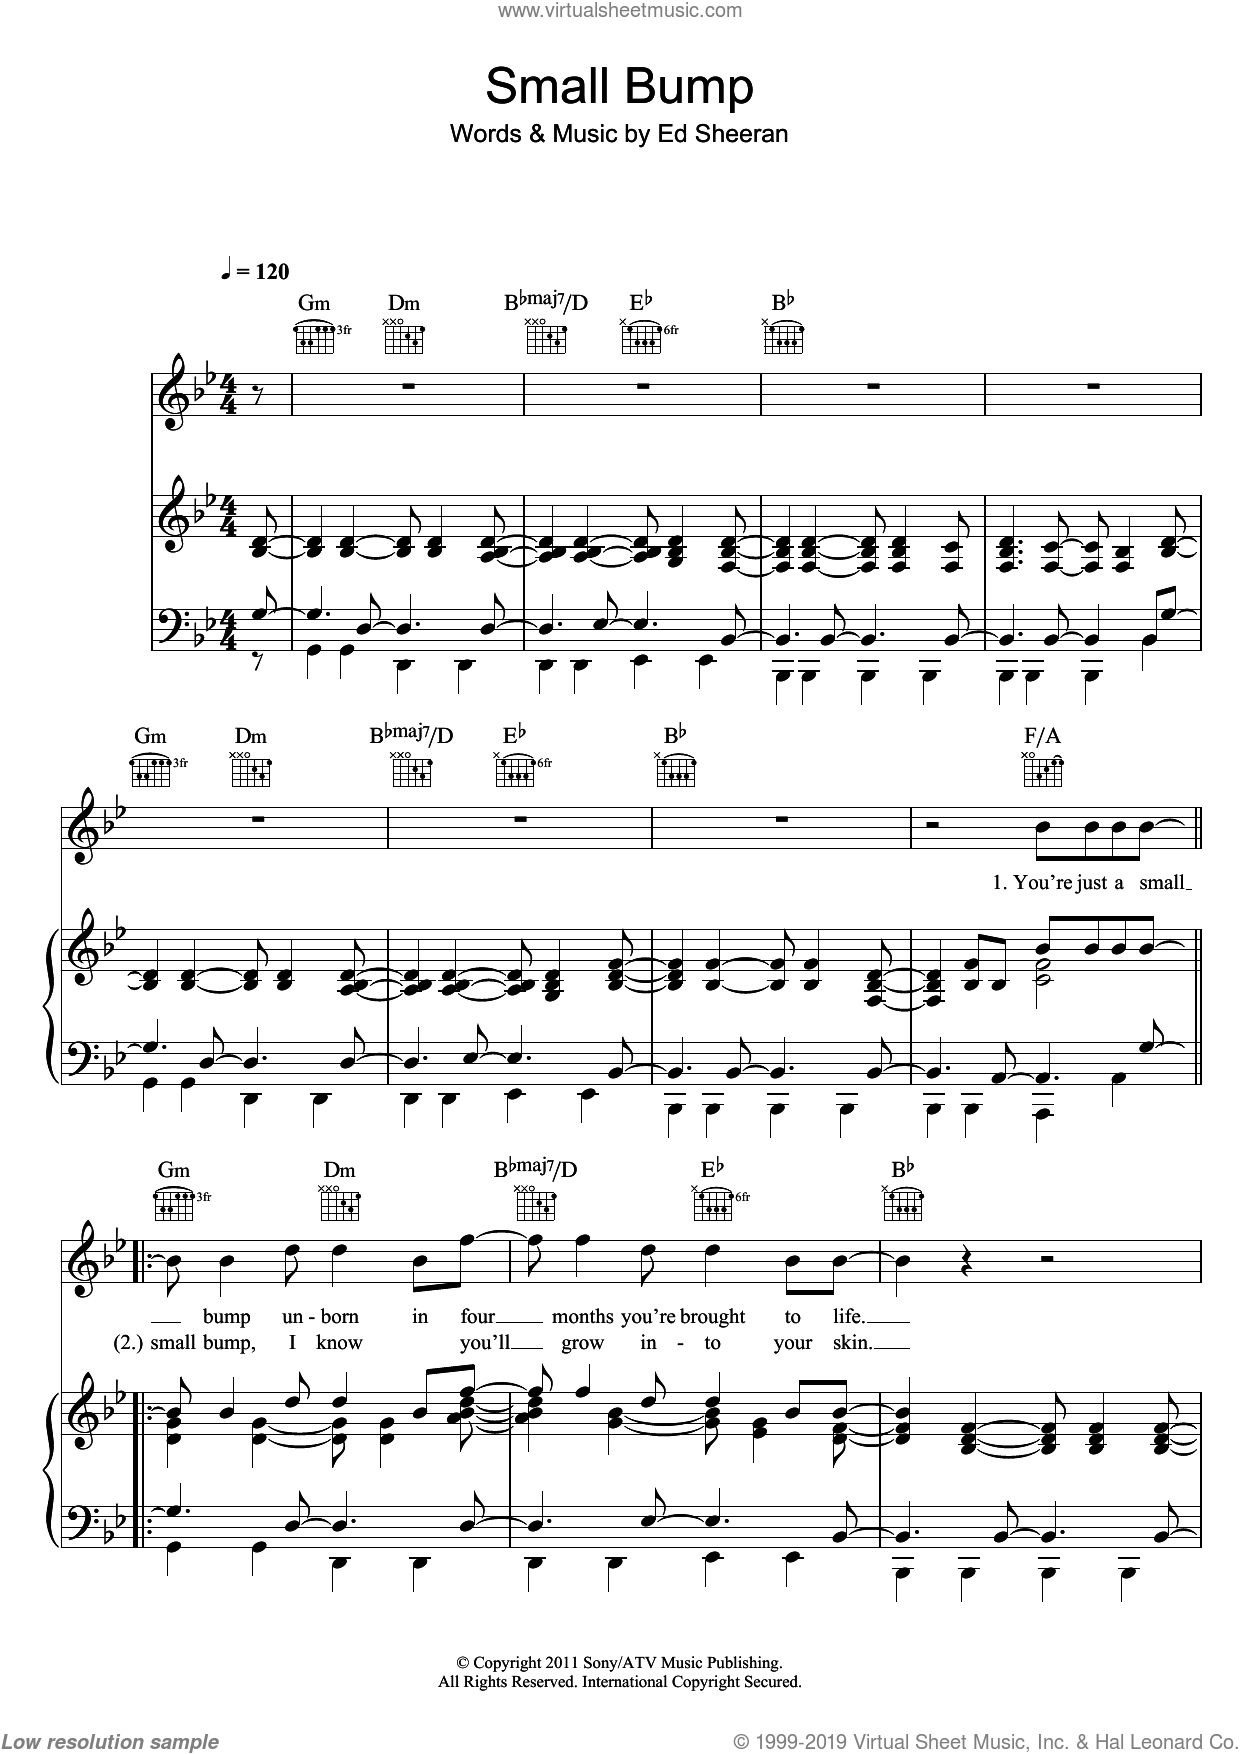 Small Bump sheet music for voice, piano or guitar by Ed Sheeran